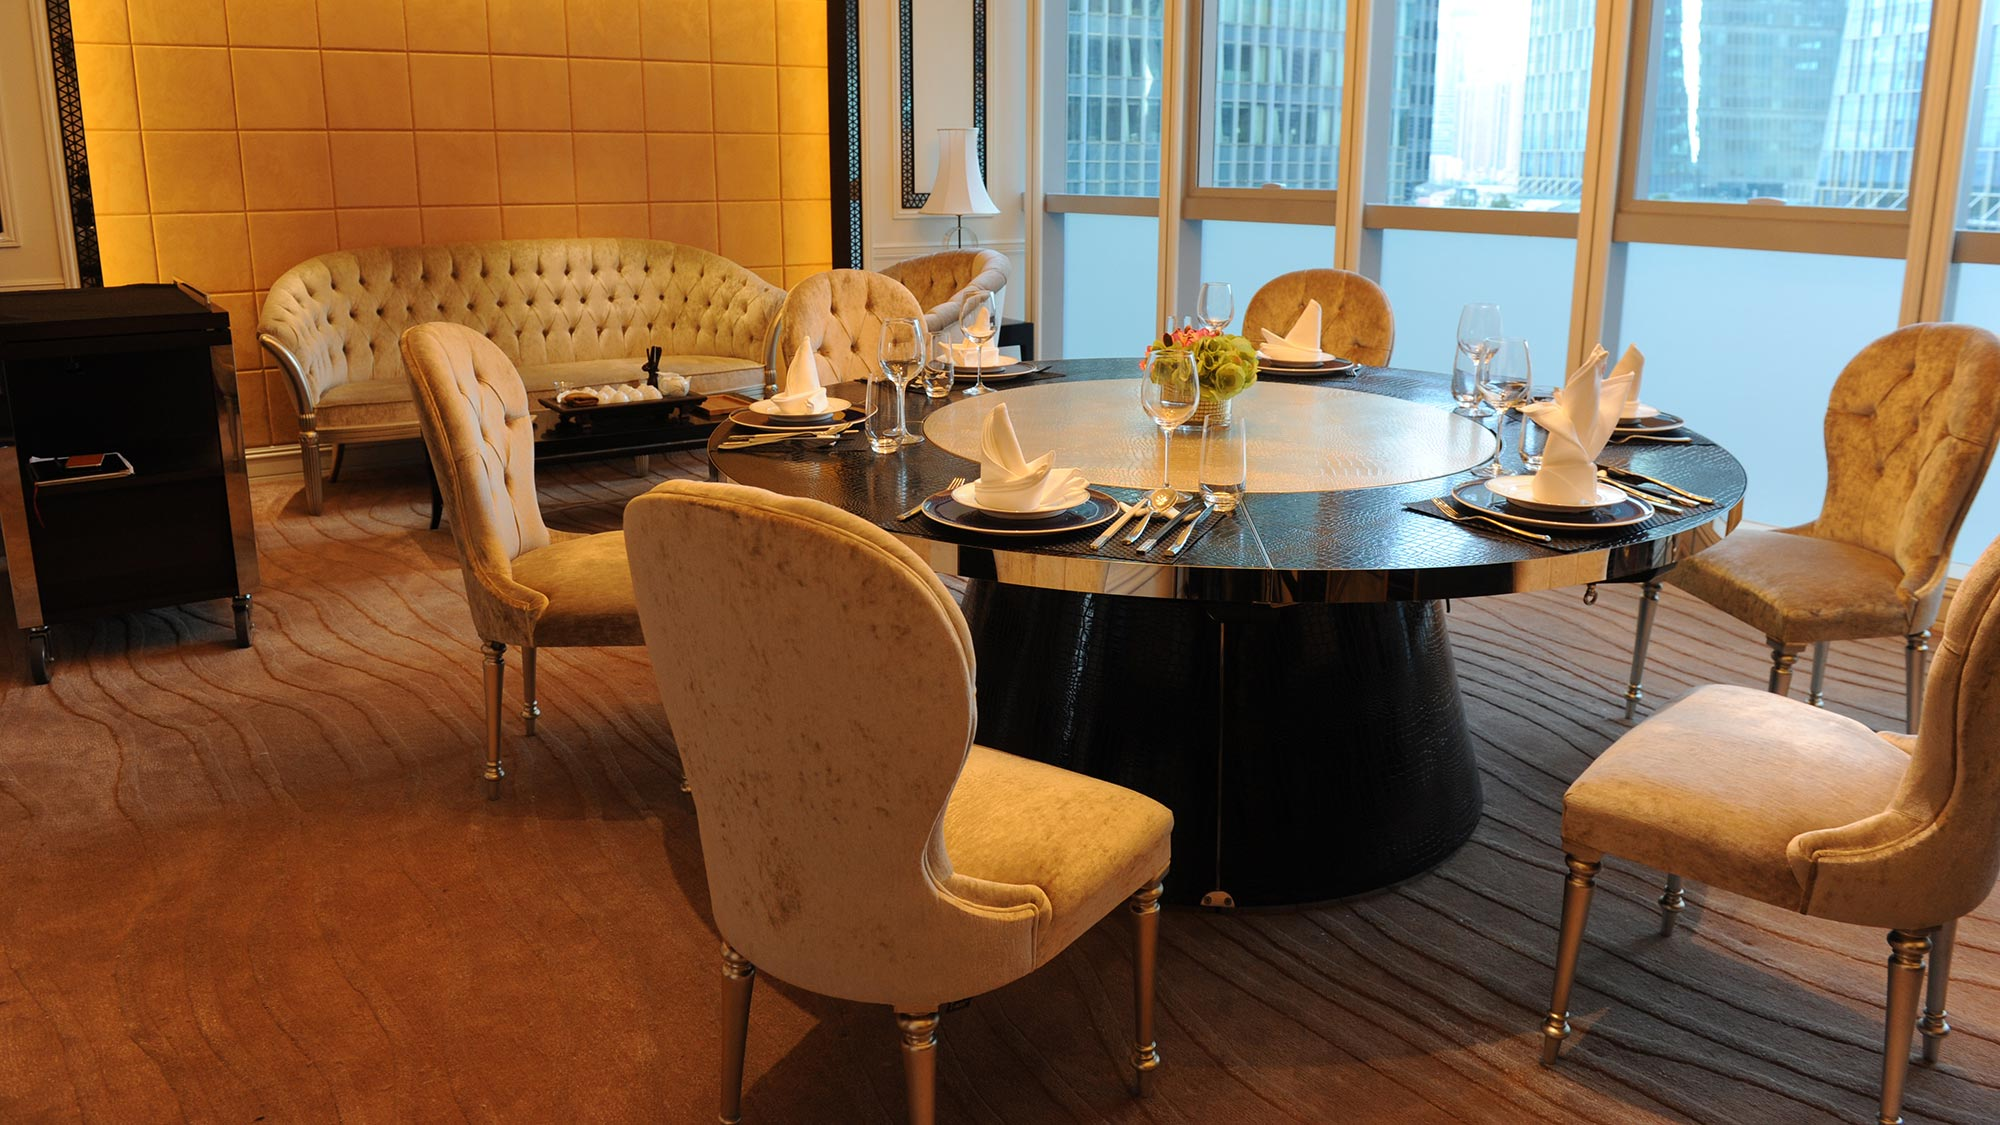 Contemporary Aida chairs by Sevensedie at the Imperial Seal restaurant in Shanghai. On the back wall a beautiful Augusto 3 seater sofa with deep buttoned back.